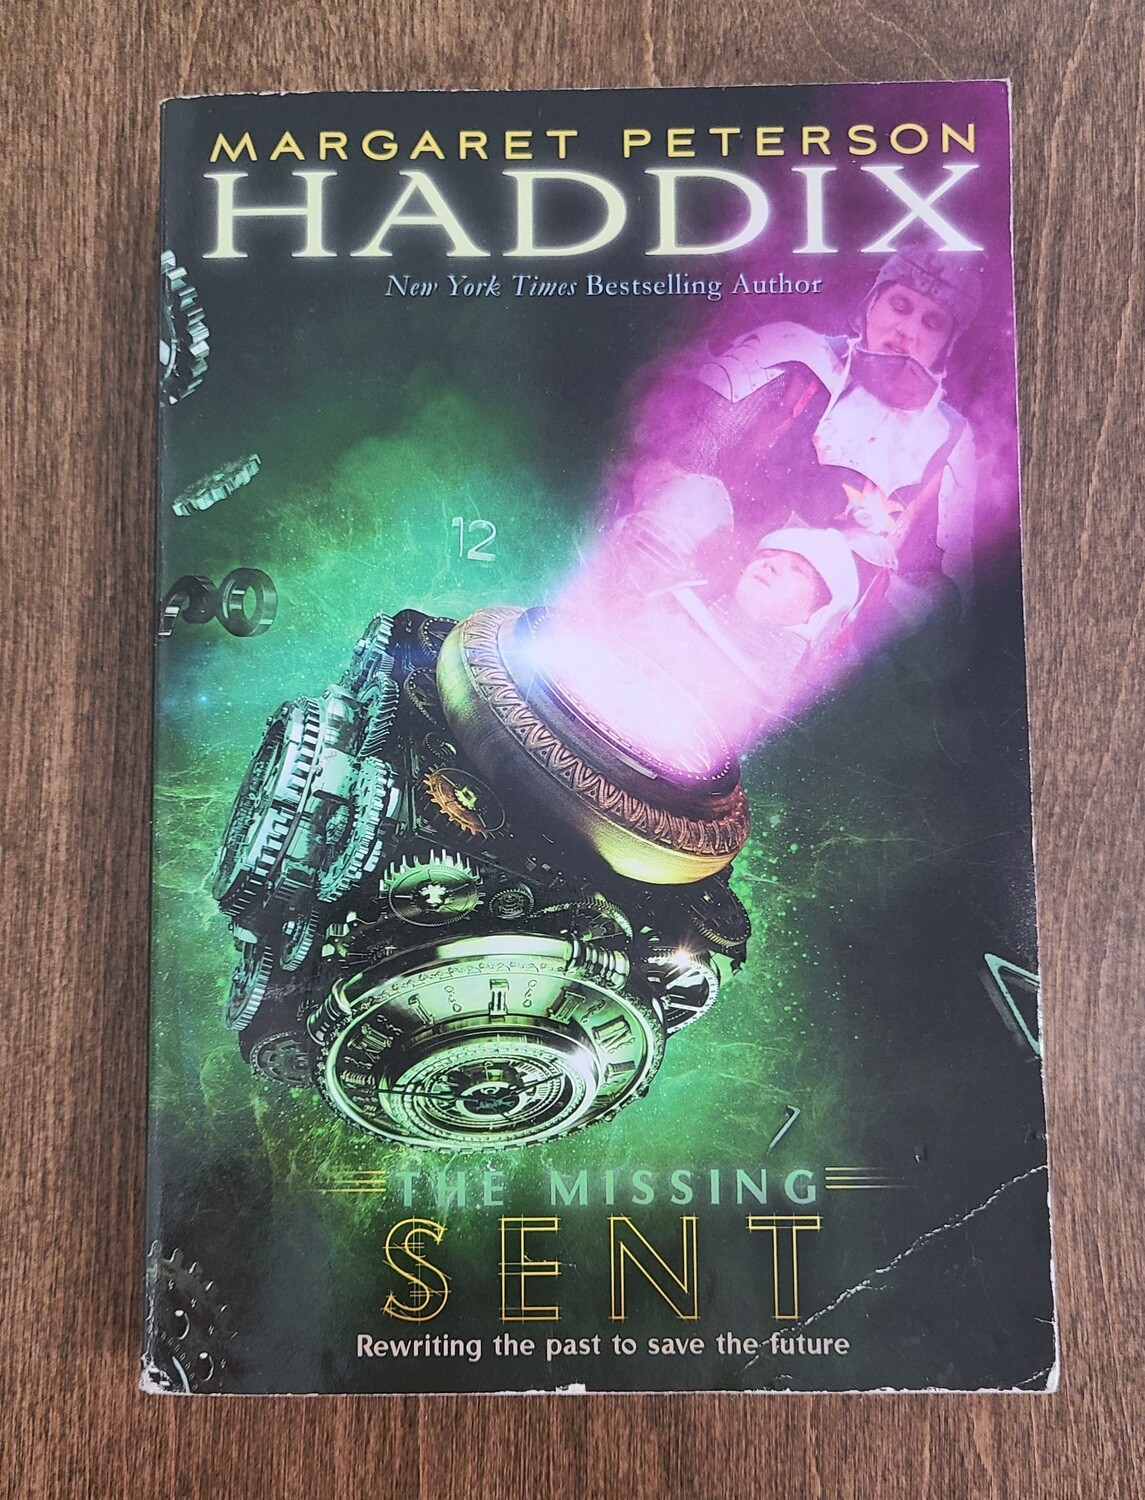 The Missing: Sent by Margaret Peterson Haddix - Paperback